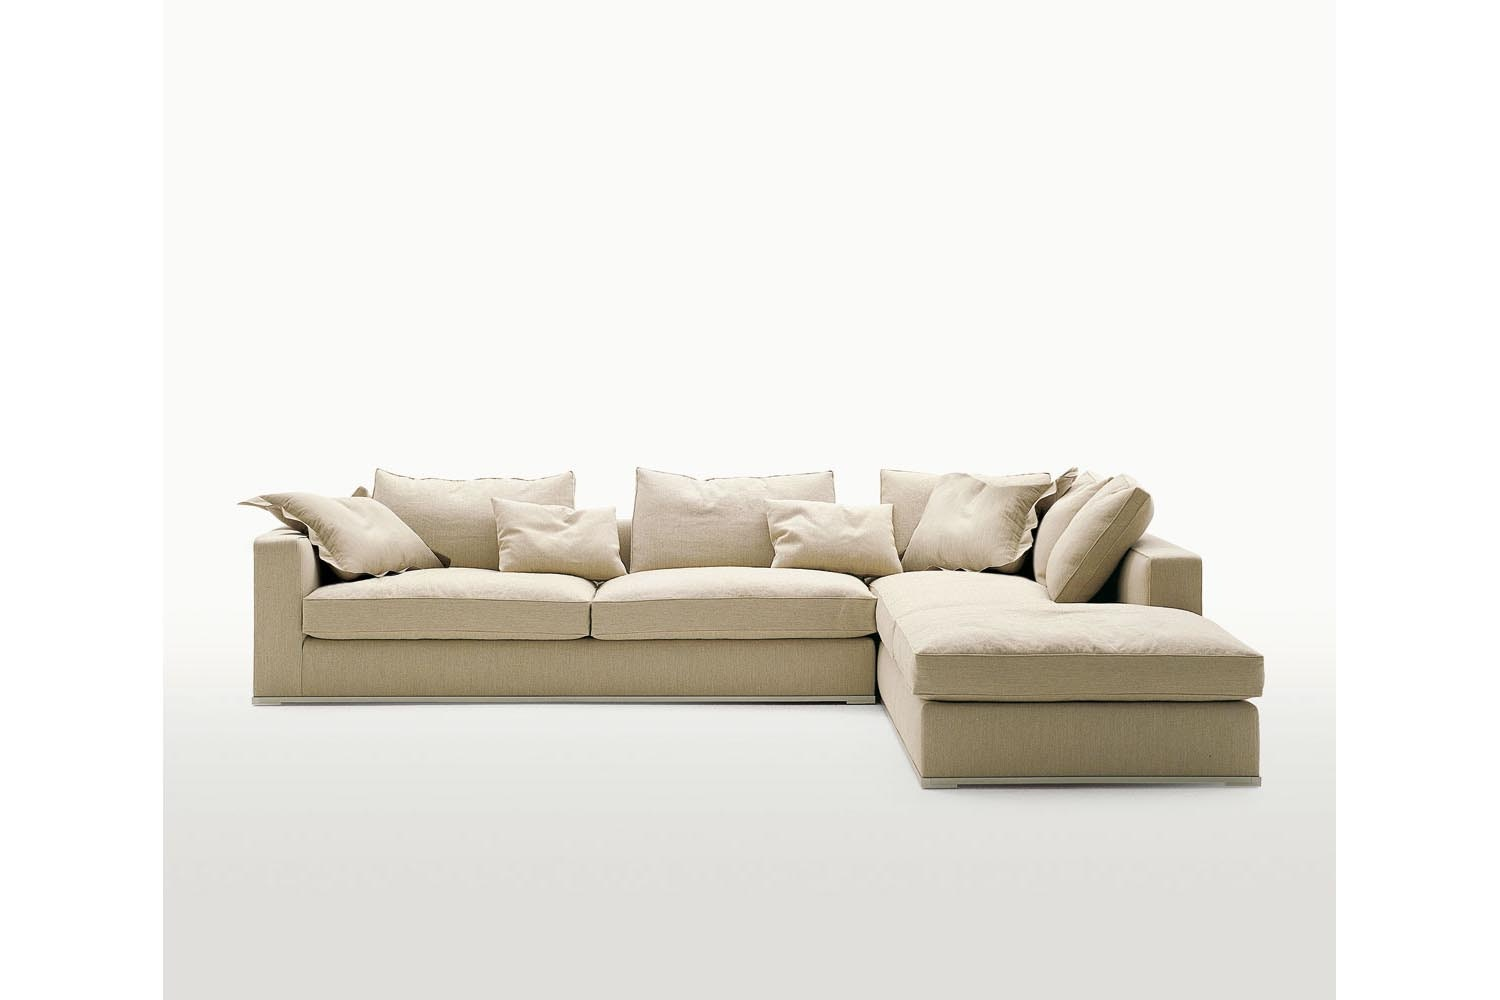 Omnia Sofa By Antonio Citterio For Maxalto. Share